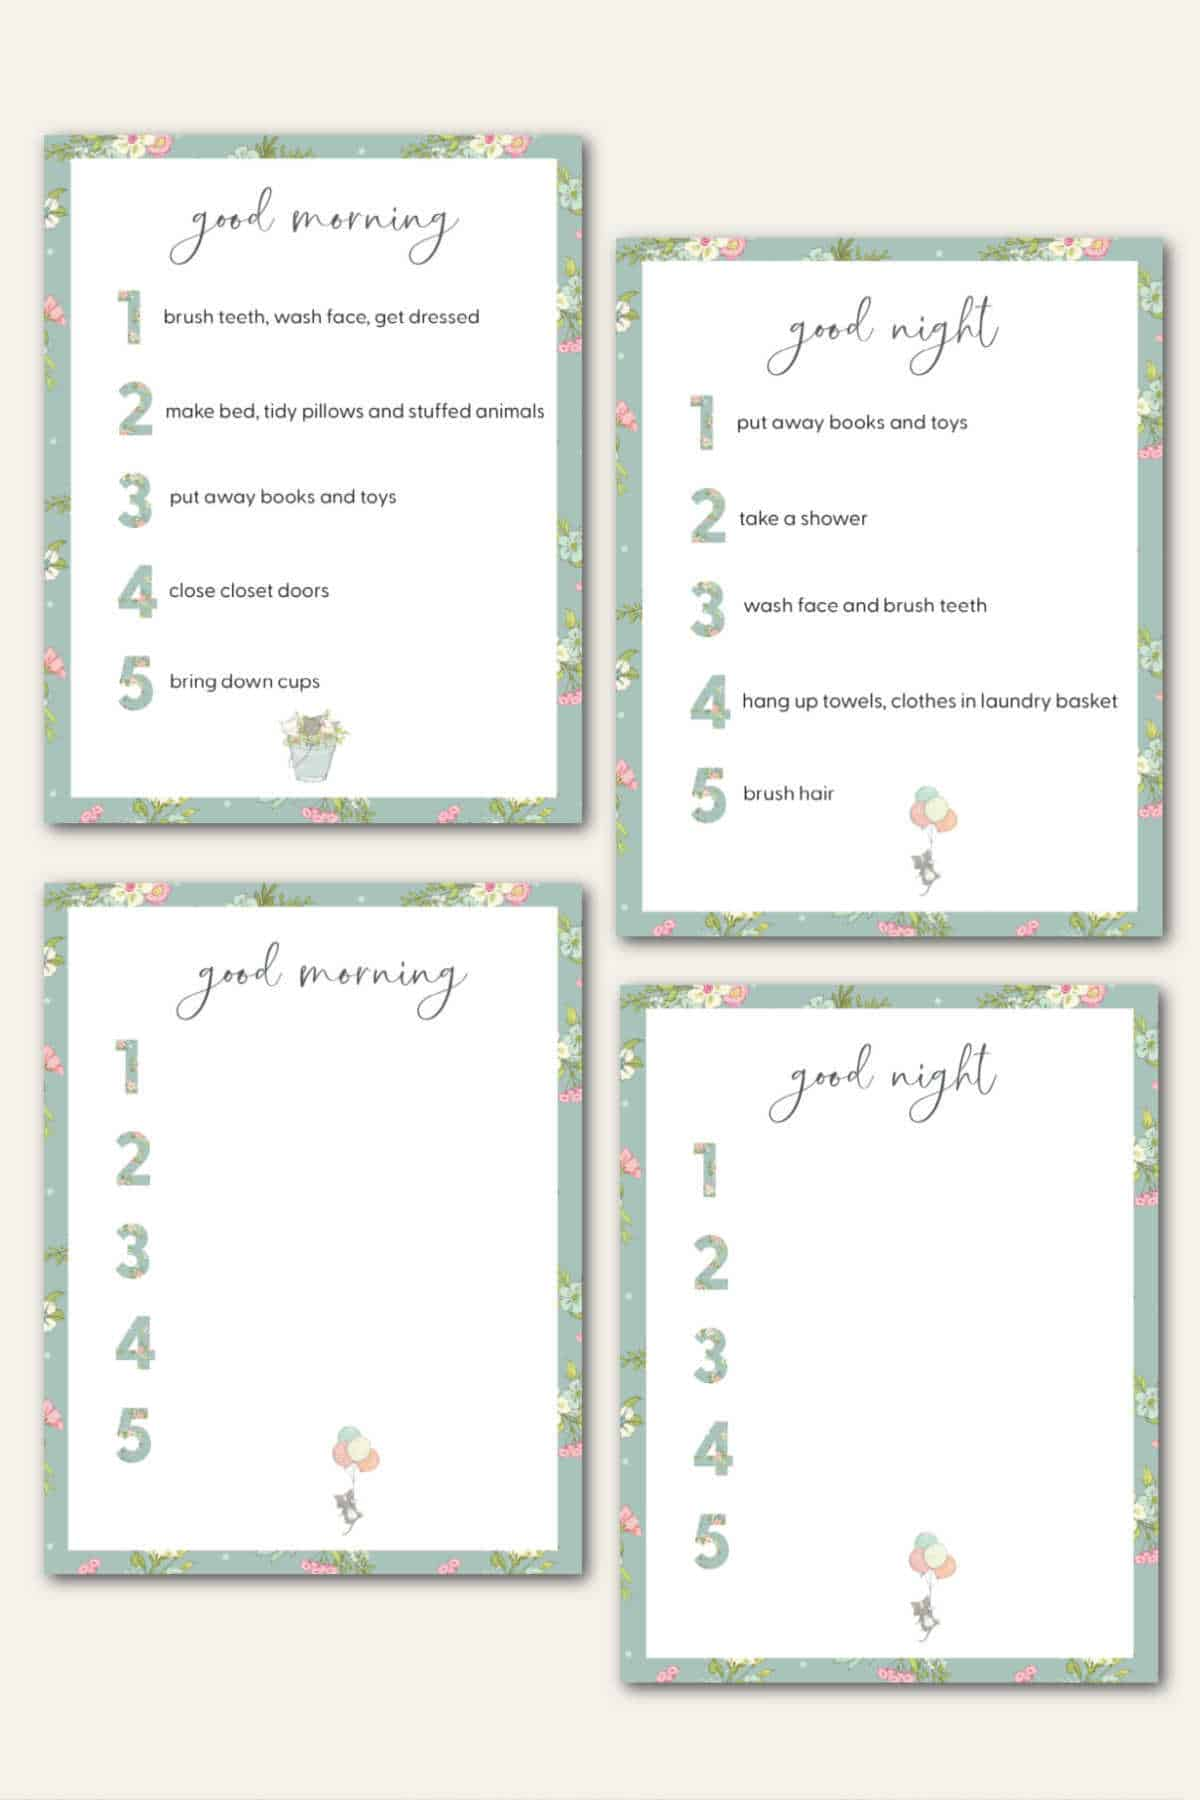 4 kids printables for morning and evening chores